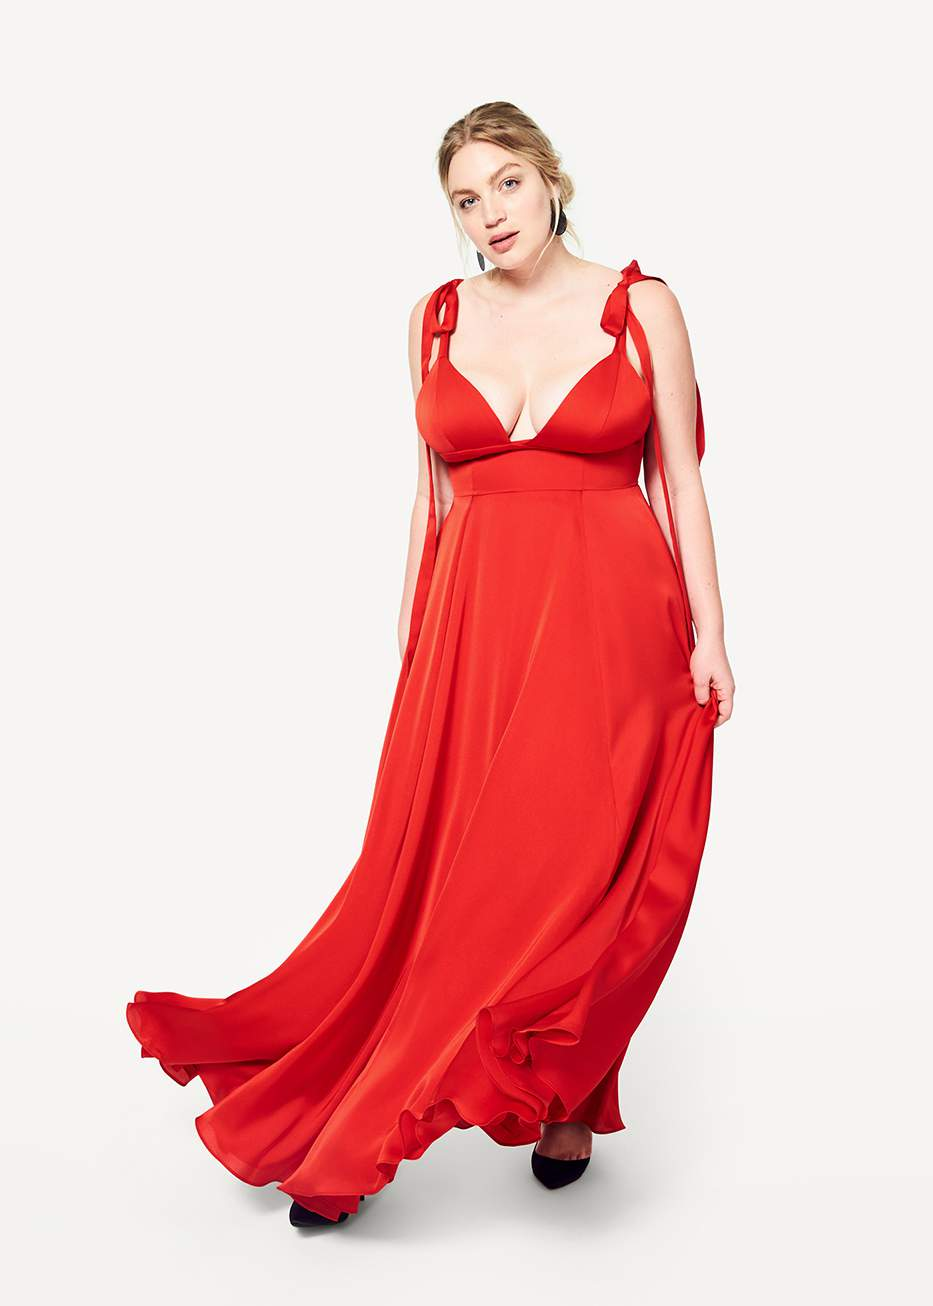 Weve Got 20 Smoking Hot Plus Size Red Dresses For